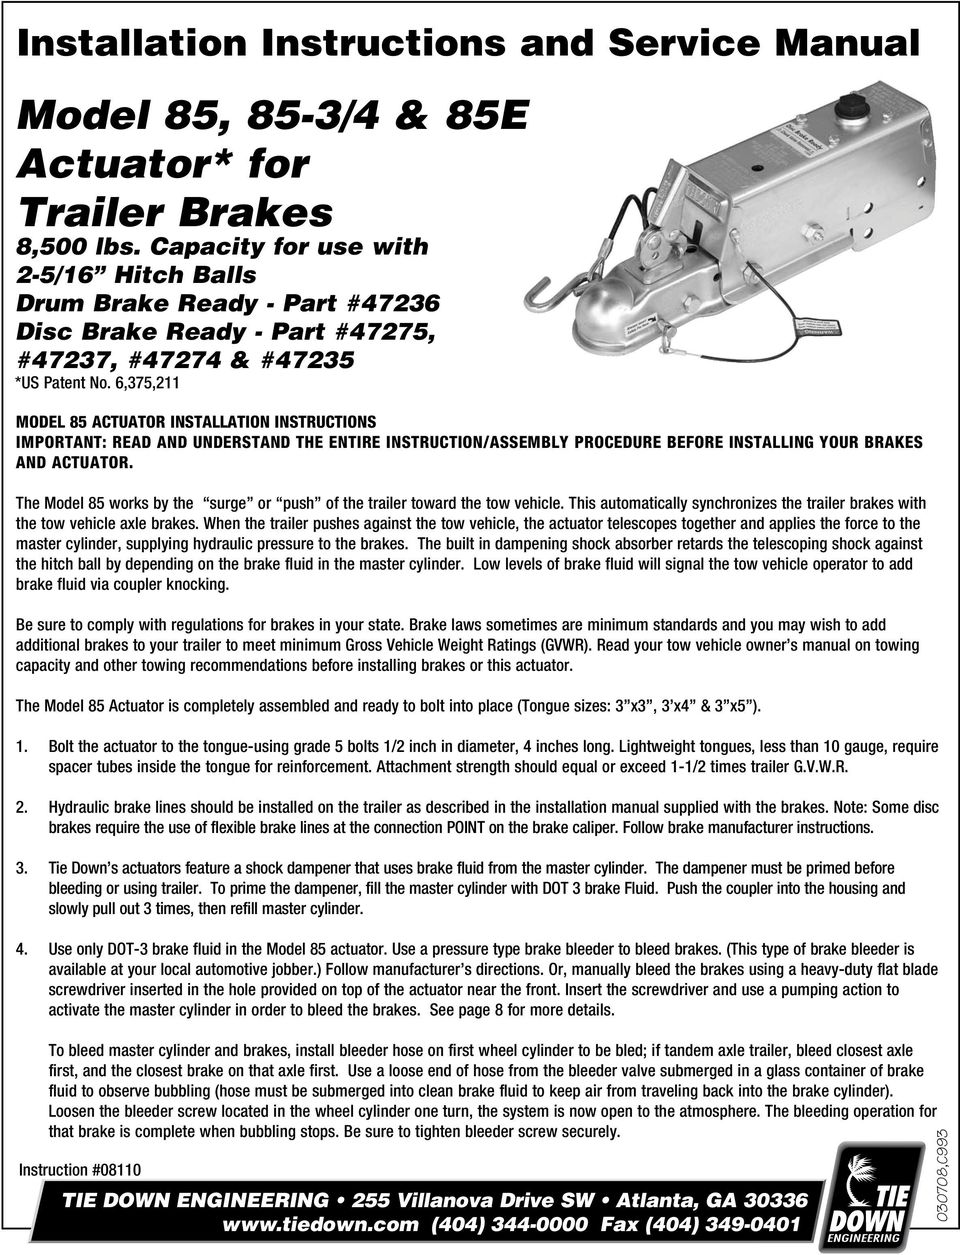 6,375,11 MODEL 85 ACTUATOR INSTALLATION INSTRUCTIONS IMPORTANT: READ AND UNDERSTAND THE ENTIRE INSTRUCTION/ASSEMBLY PROCEDURE BEFORE INSTALLING YOUR BRAKES AND ACTUATOR.